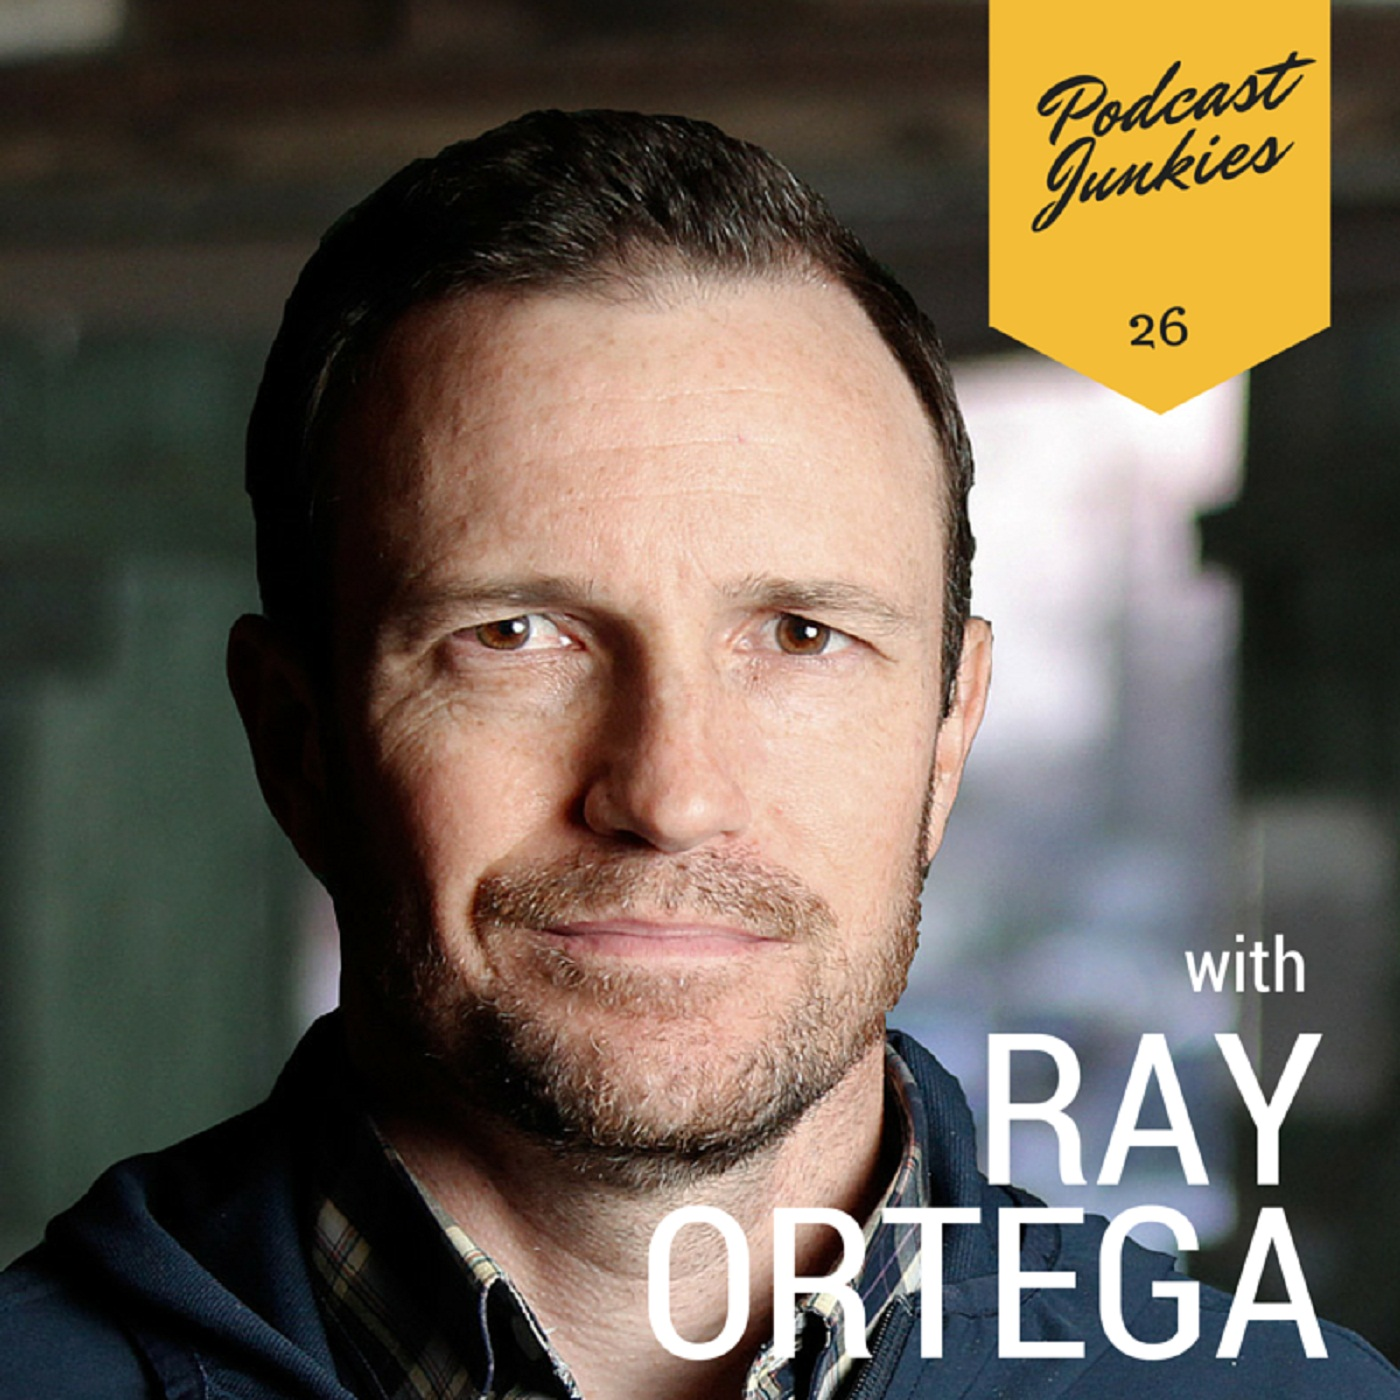 026 Ray Ortega | Why This Host Is So Passionate About Producing Quality Shows